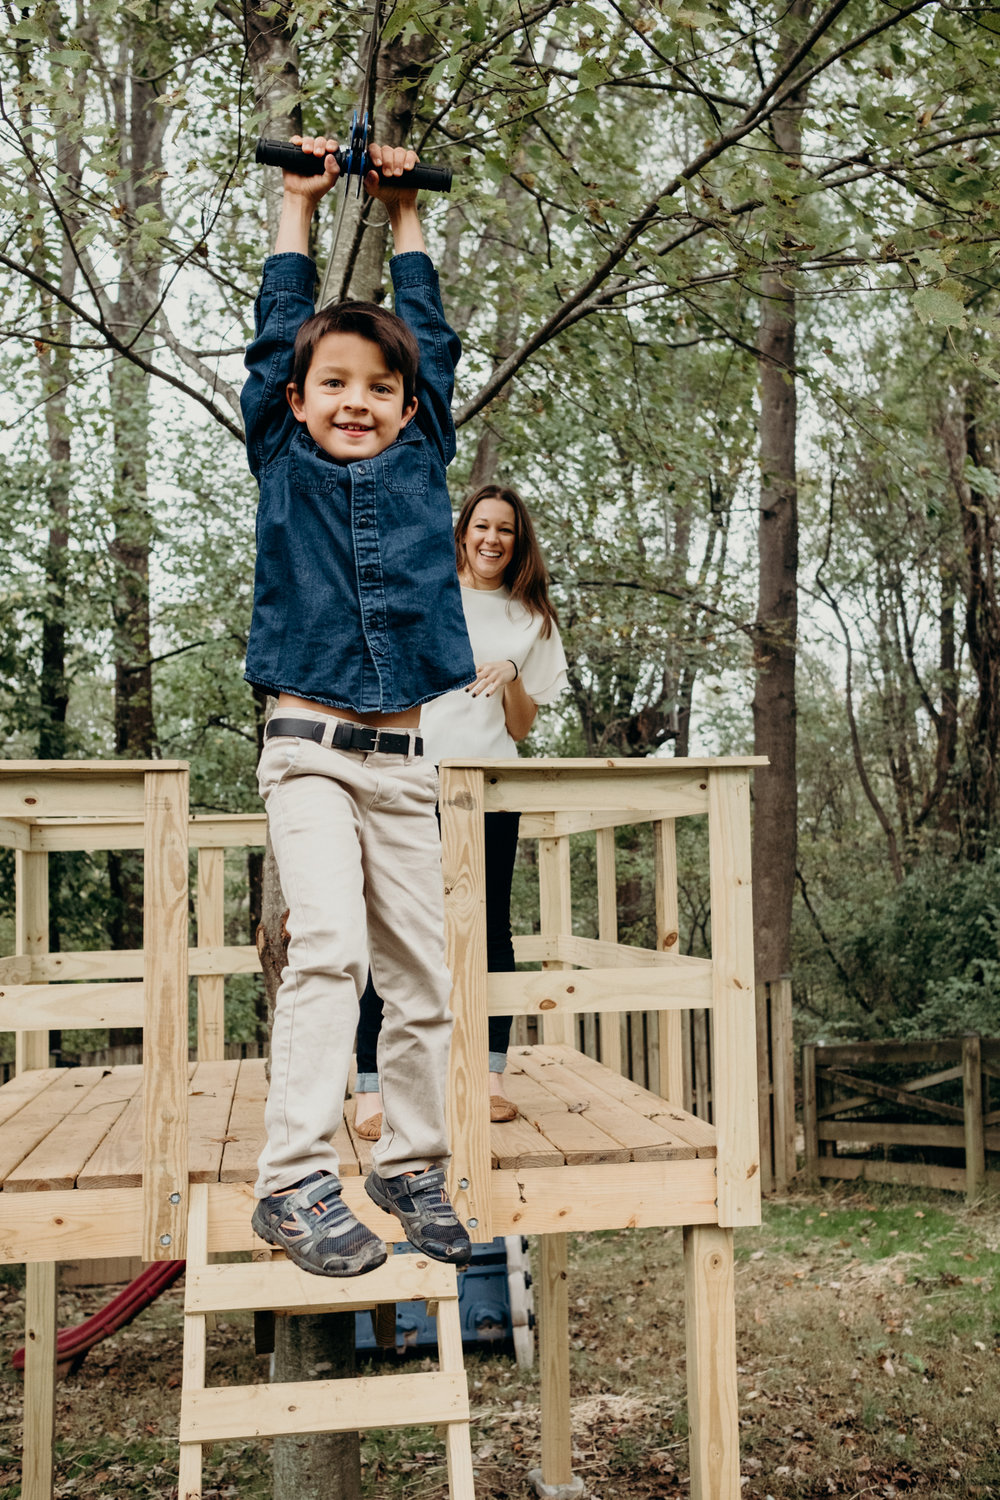 boy ziplines in backyard during family photo session